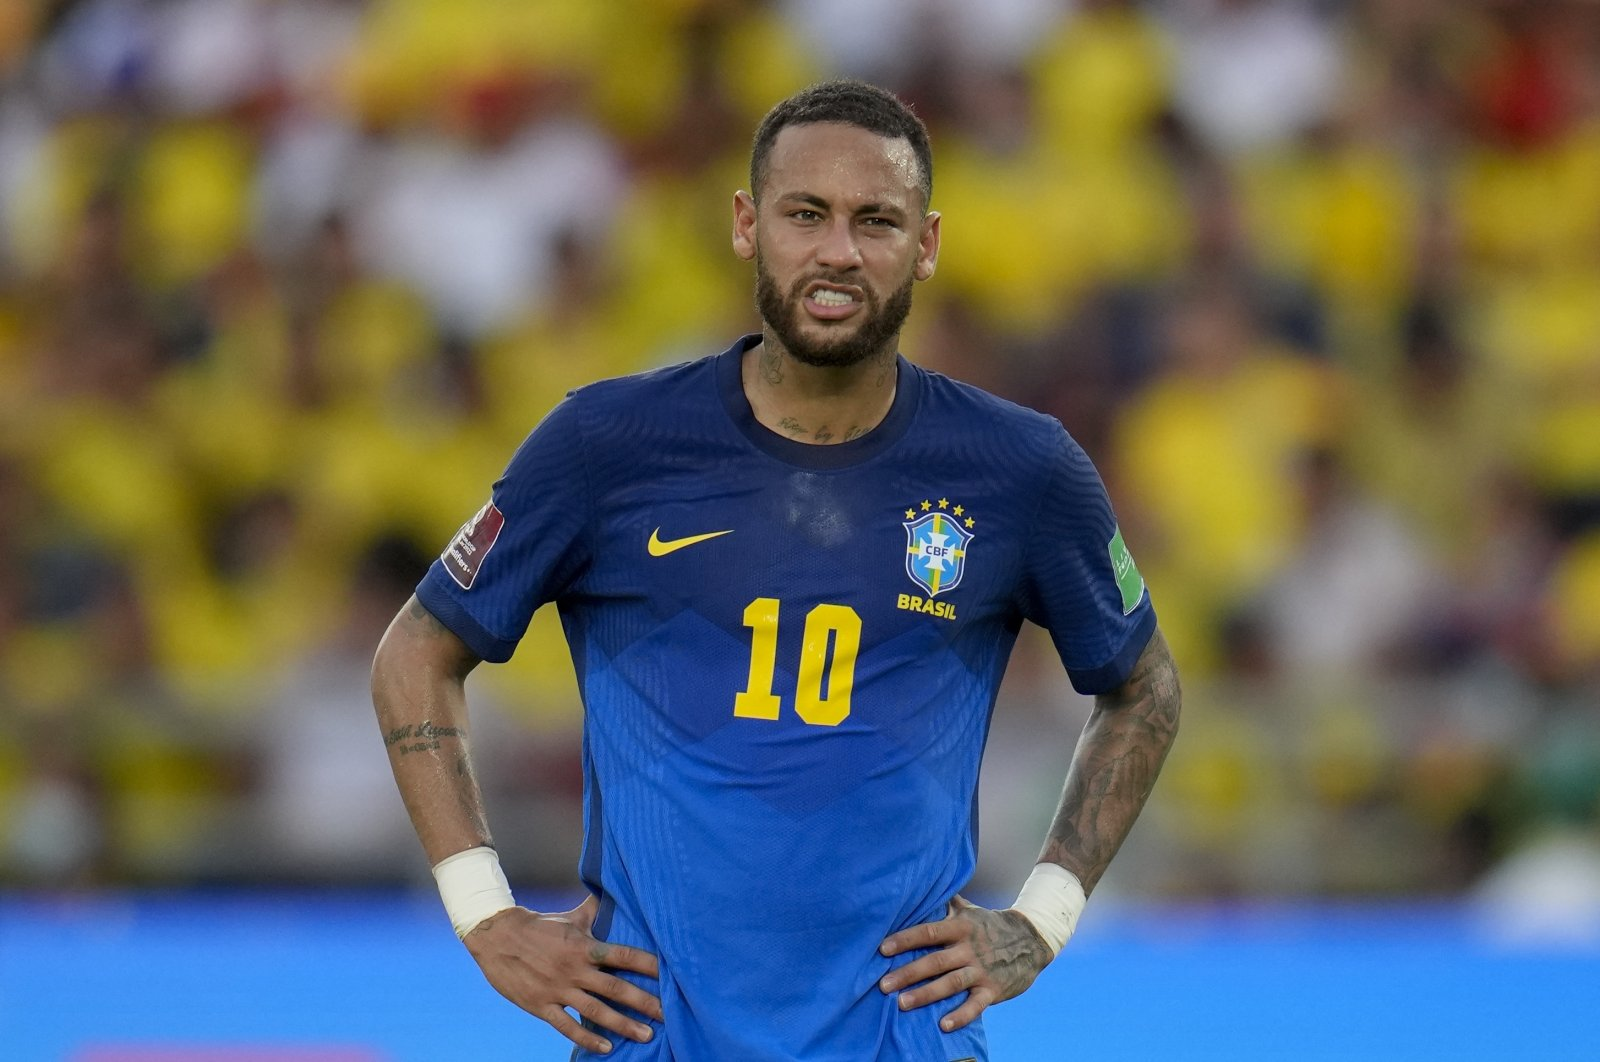 Brazil's Neymar gestures during a FIFA World Cup Qatar 2022 qualifier against Colombia in Barranquilla, Colombia, Oct. 10, 2021. (AP Photo)